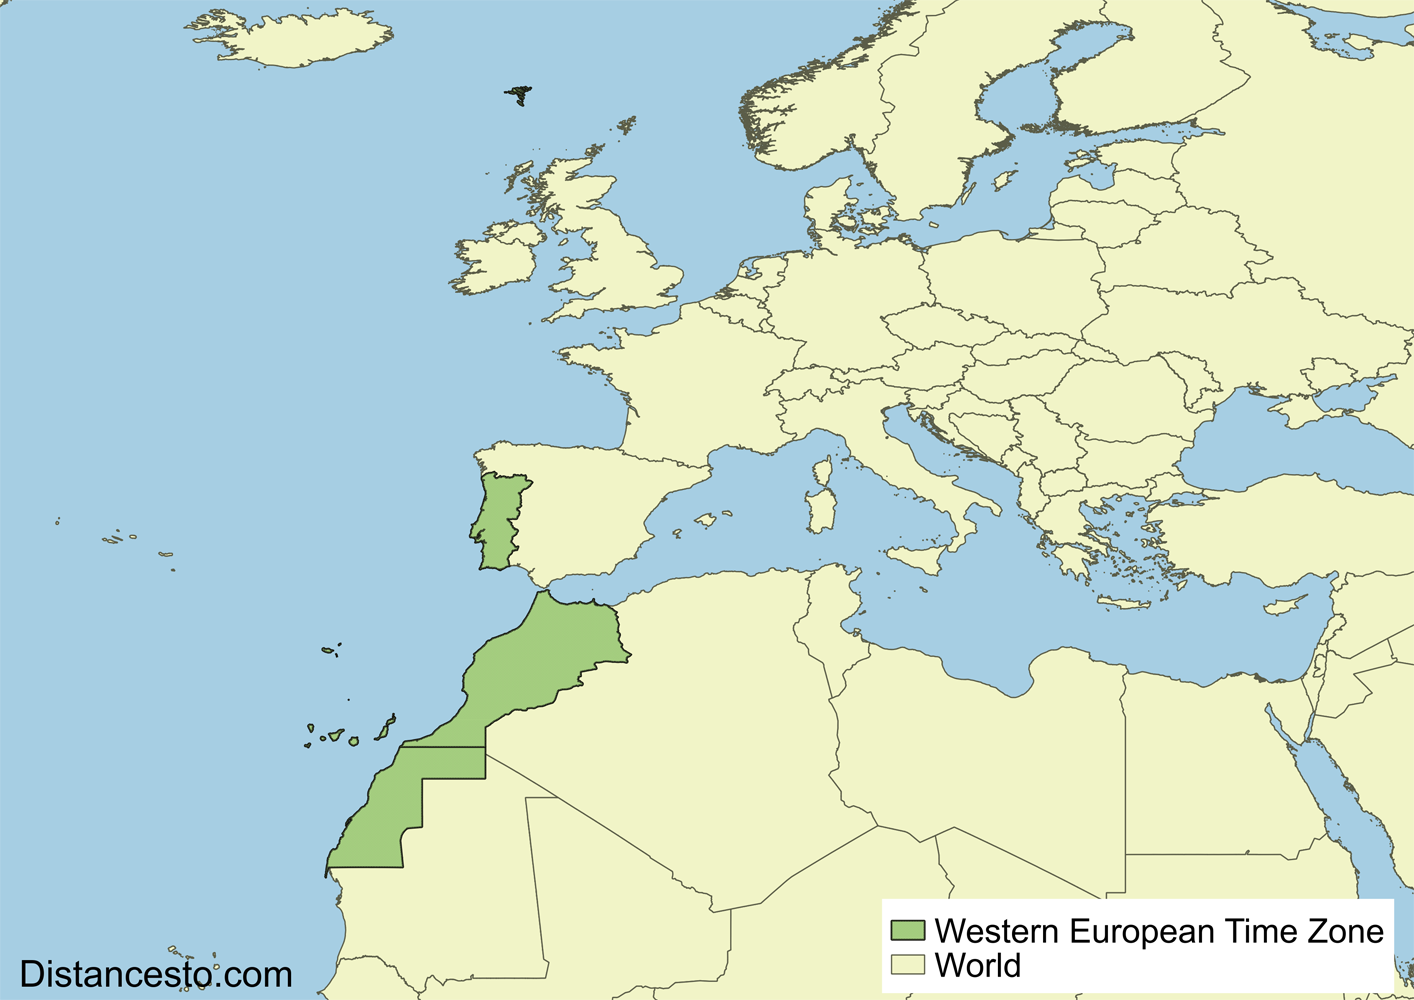 WET/WEST Western European Time Zone